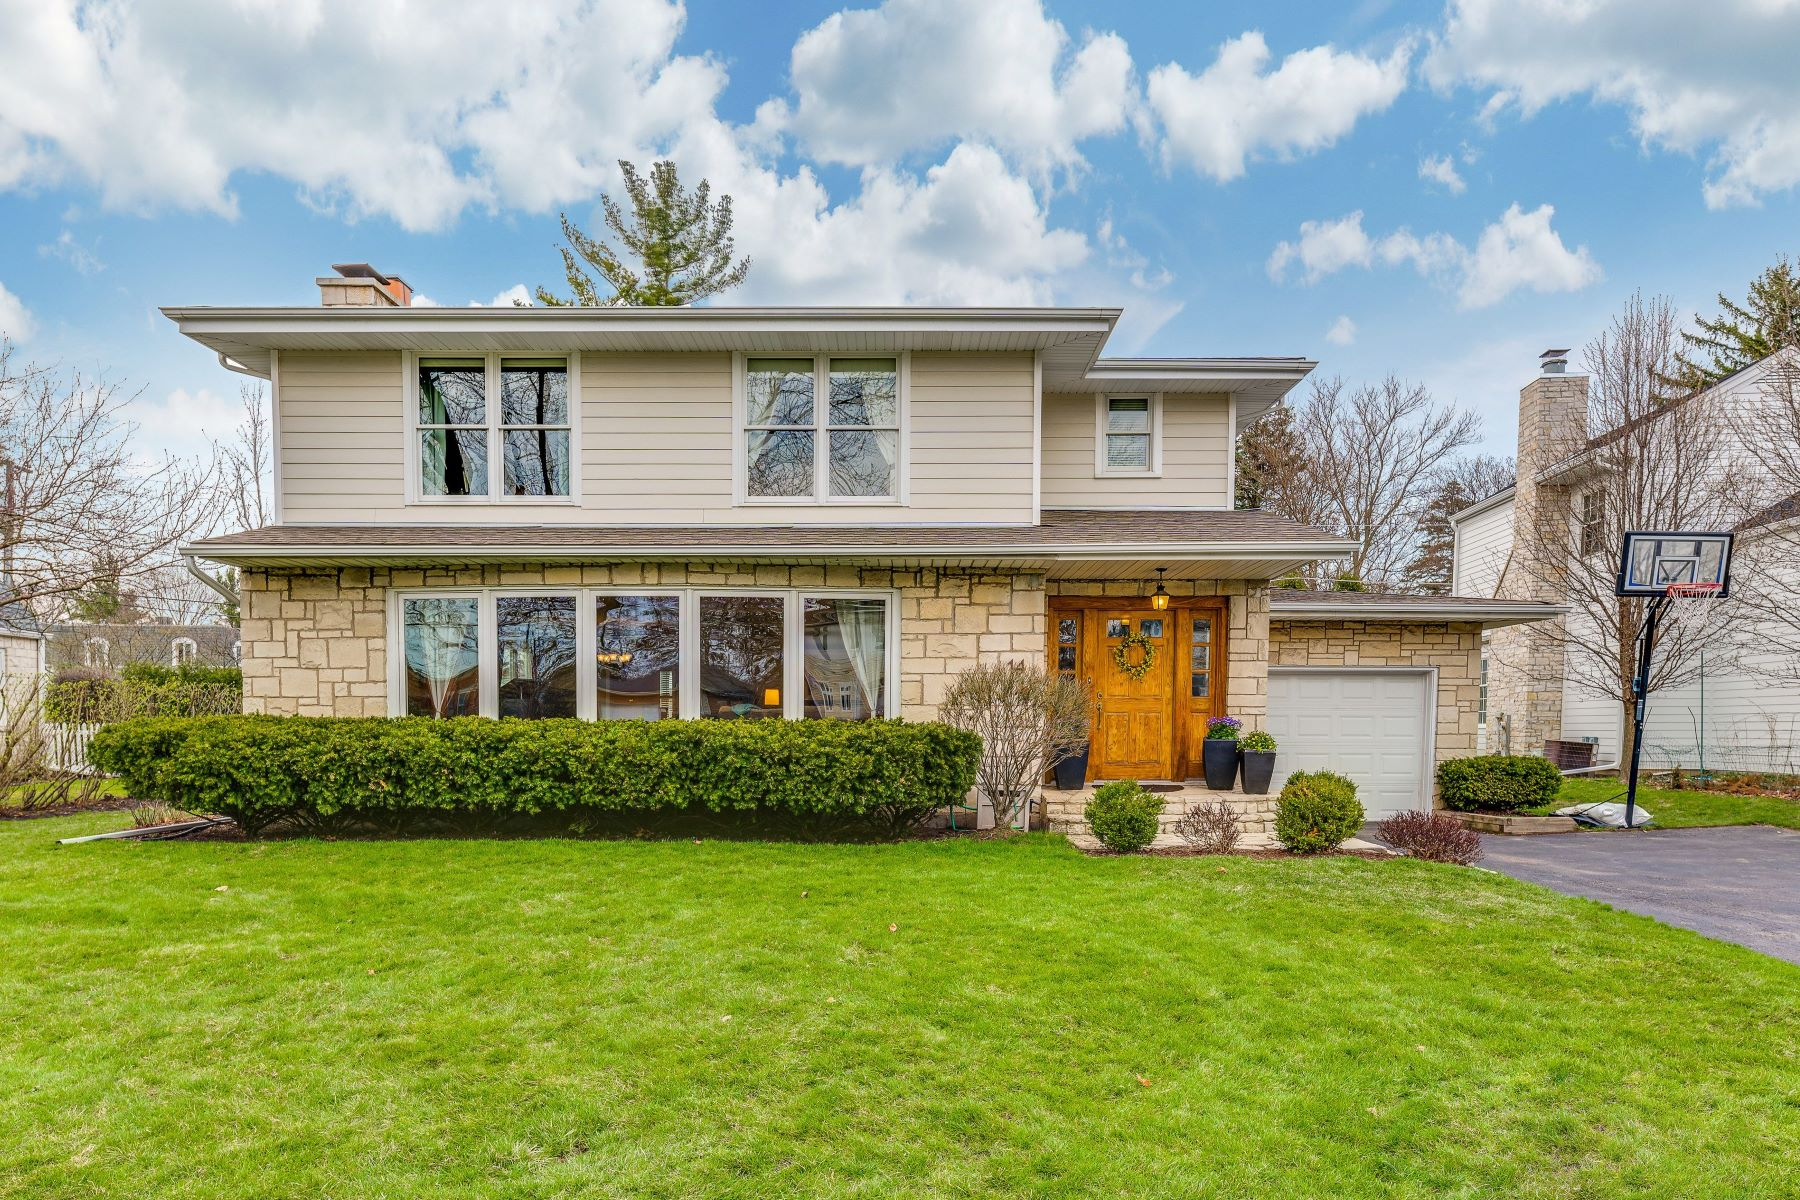 Single Family Home for Sale at The One You've Been Waiting For! 14 Briar Road Golf, Illinois 60029 United States